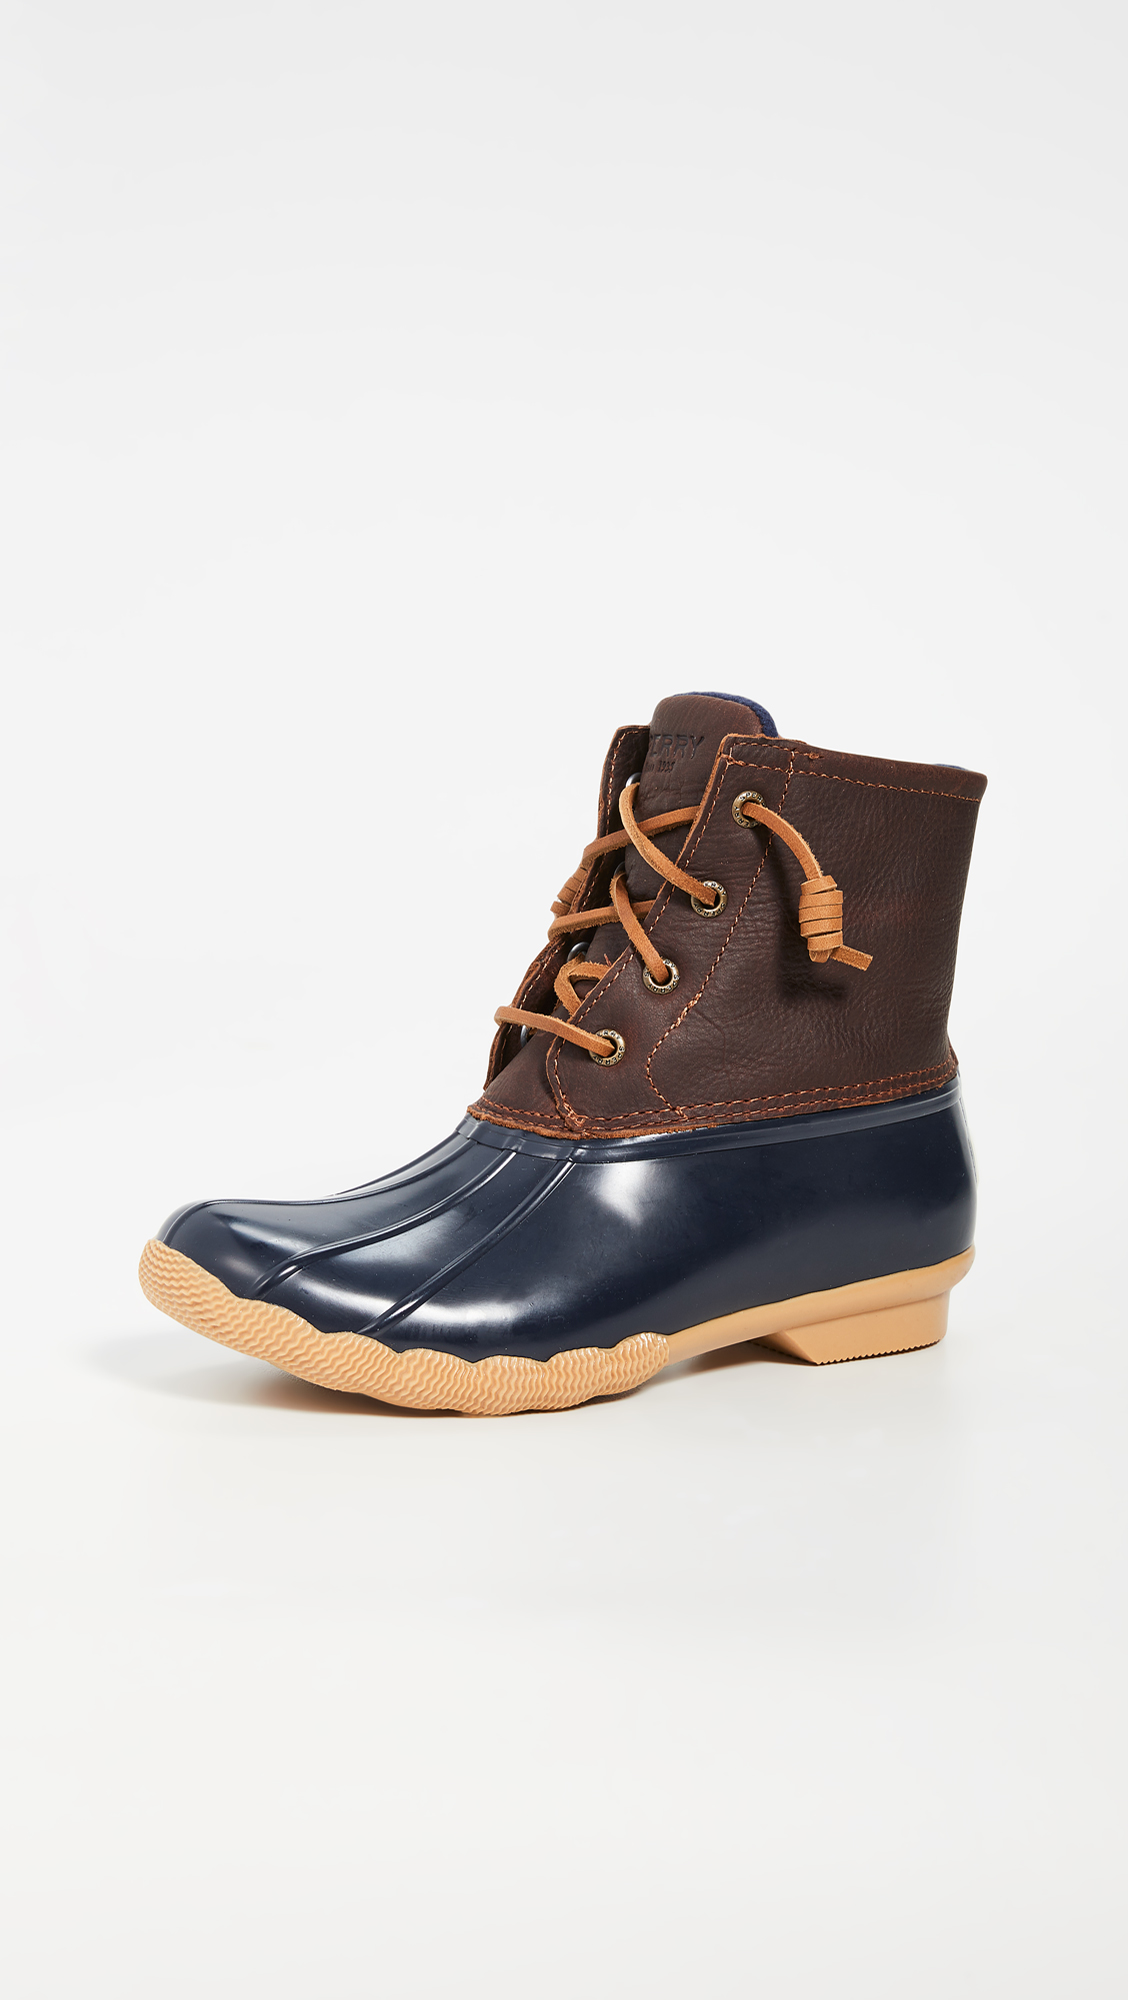 Sperry Lace Up Rainboot